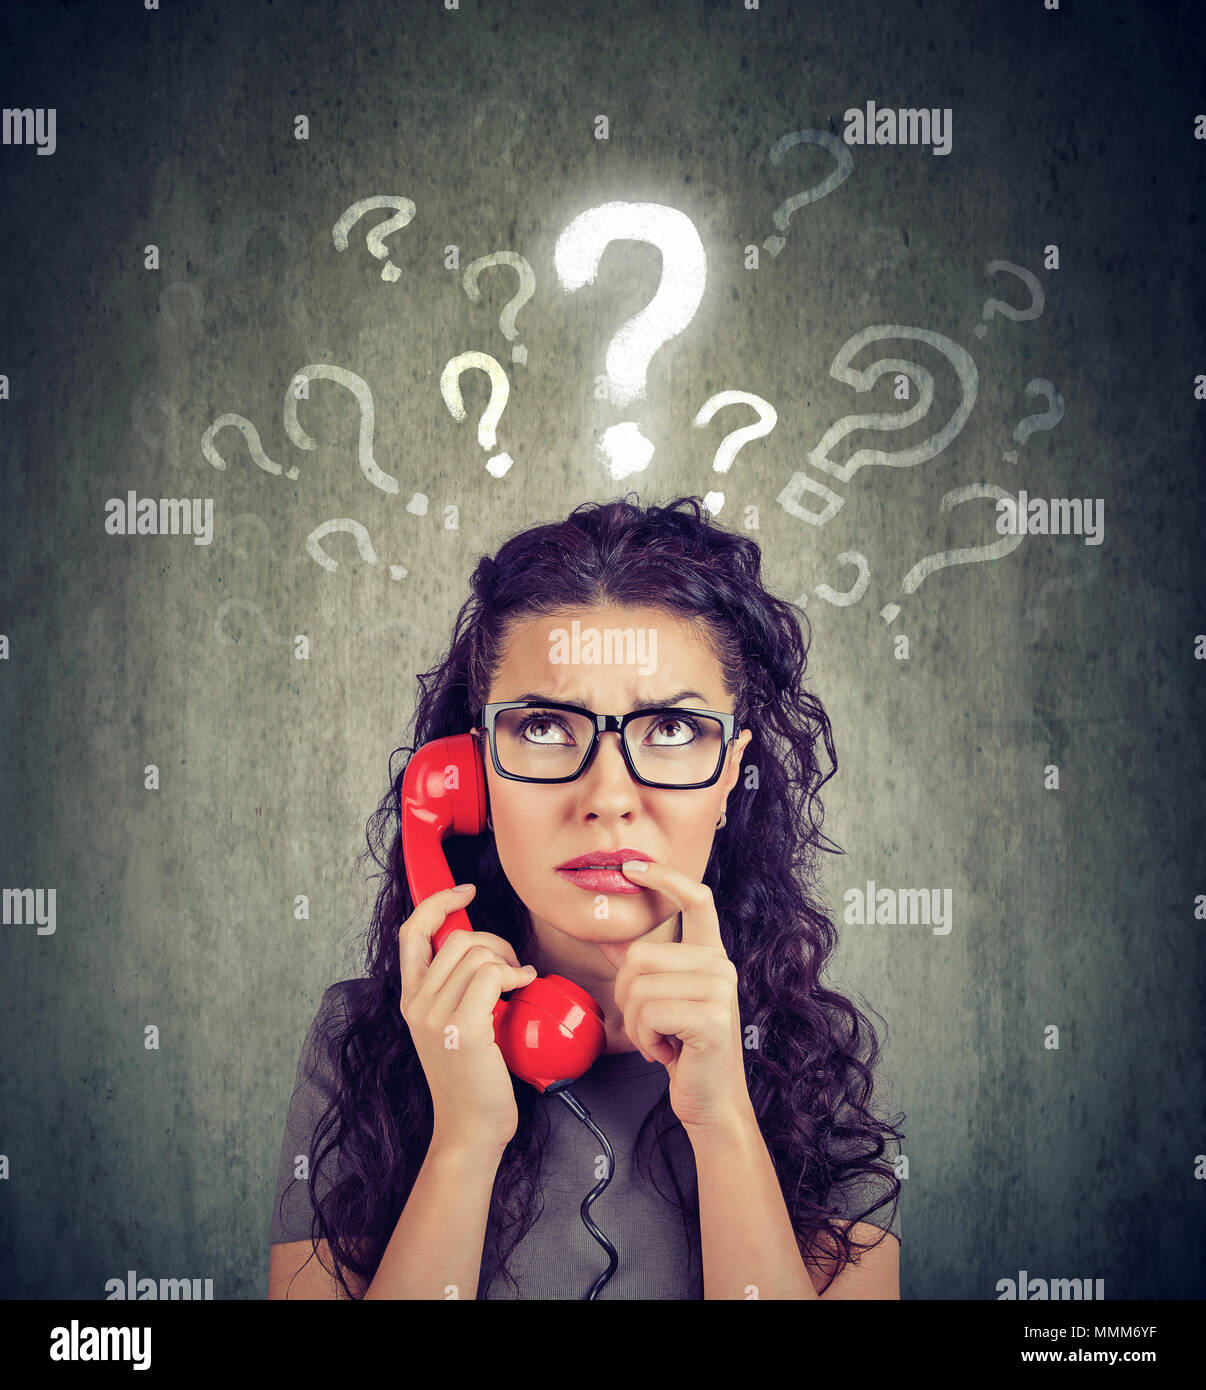 Misunderstanding and distant call. Upset worried confused woman talking on a phone has many questions isolated on gray background. Stock Photo